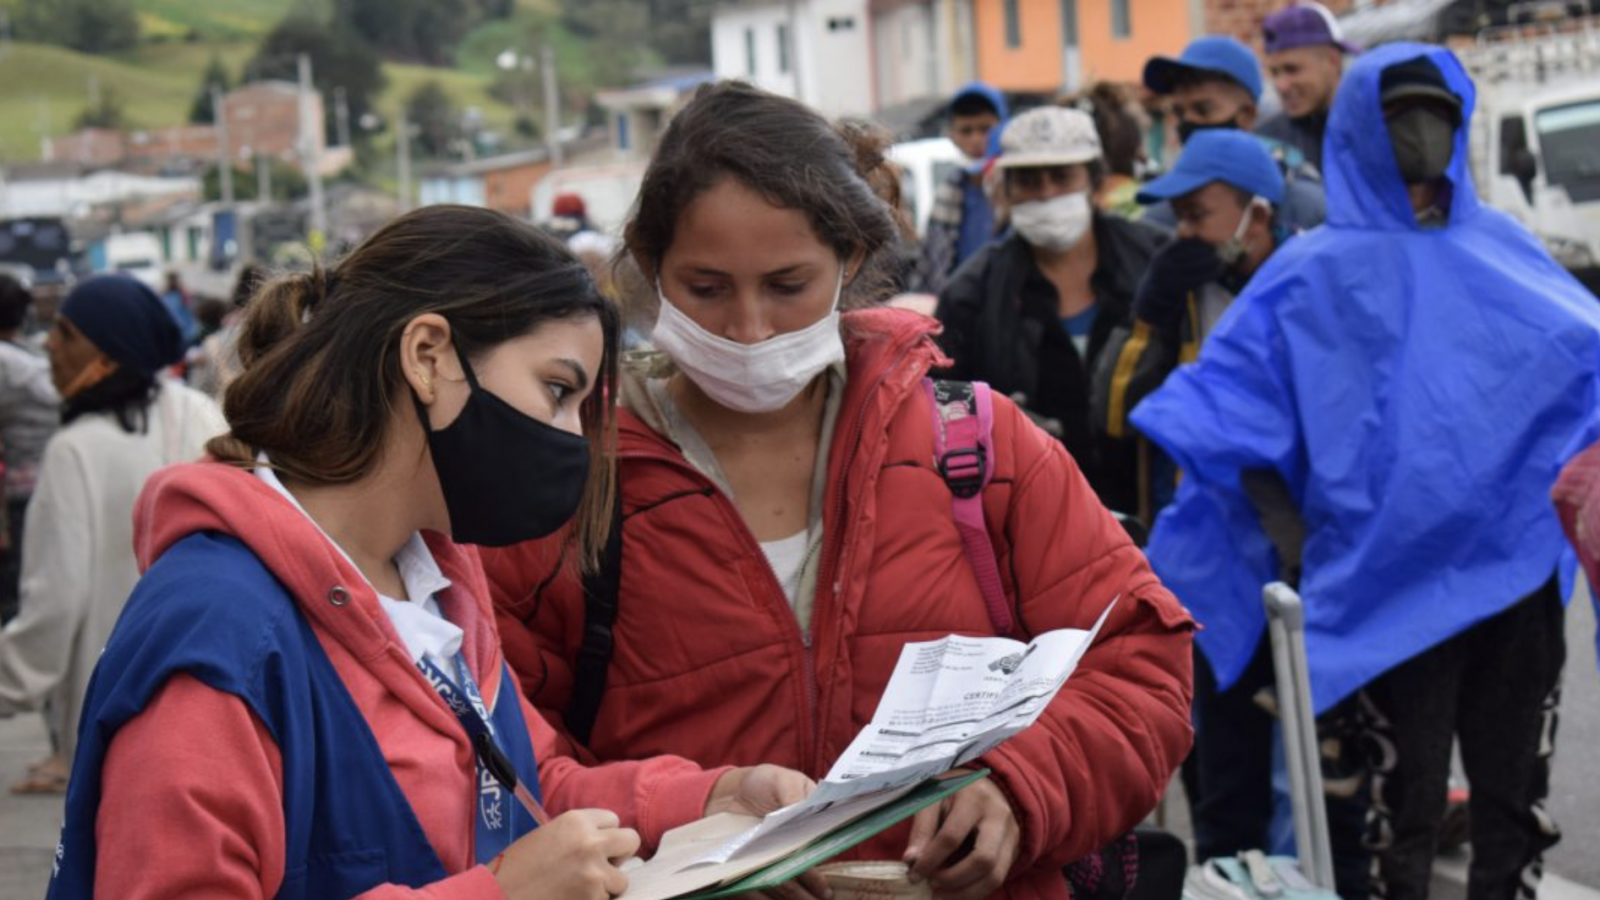 JRS Colombia staff assist asylum seekers from neighboring Venezuela during COVID-19 in 2020.